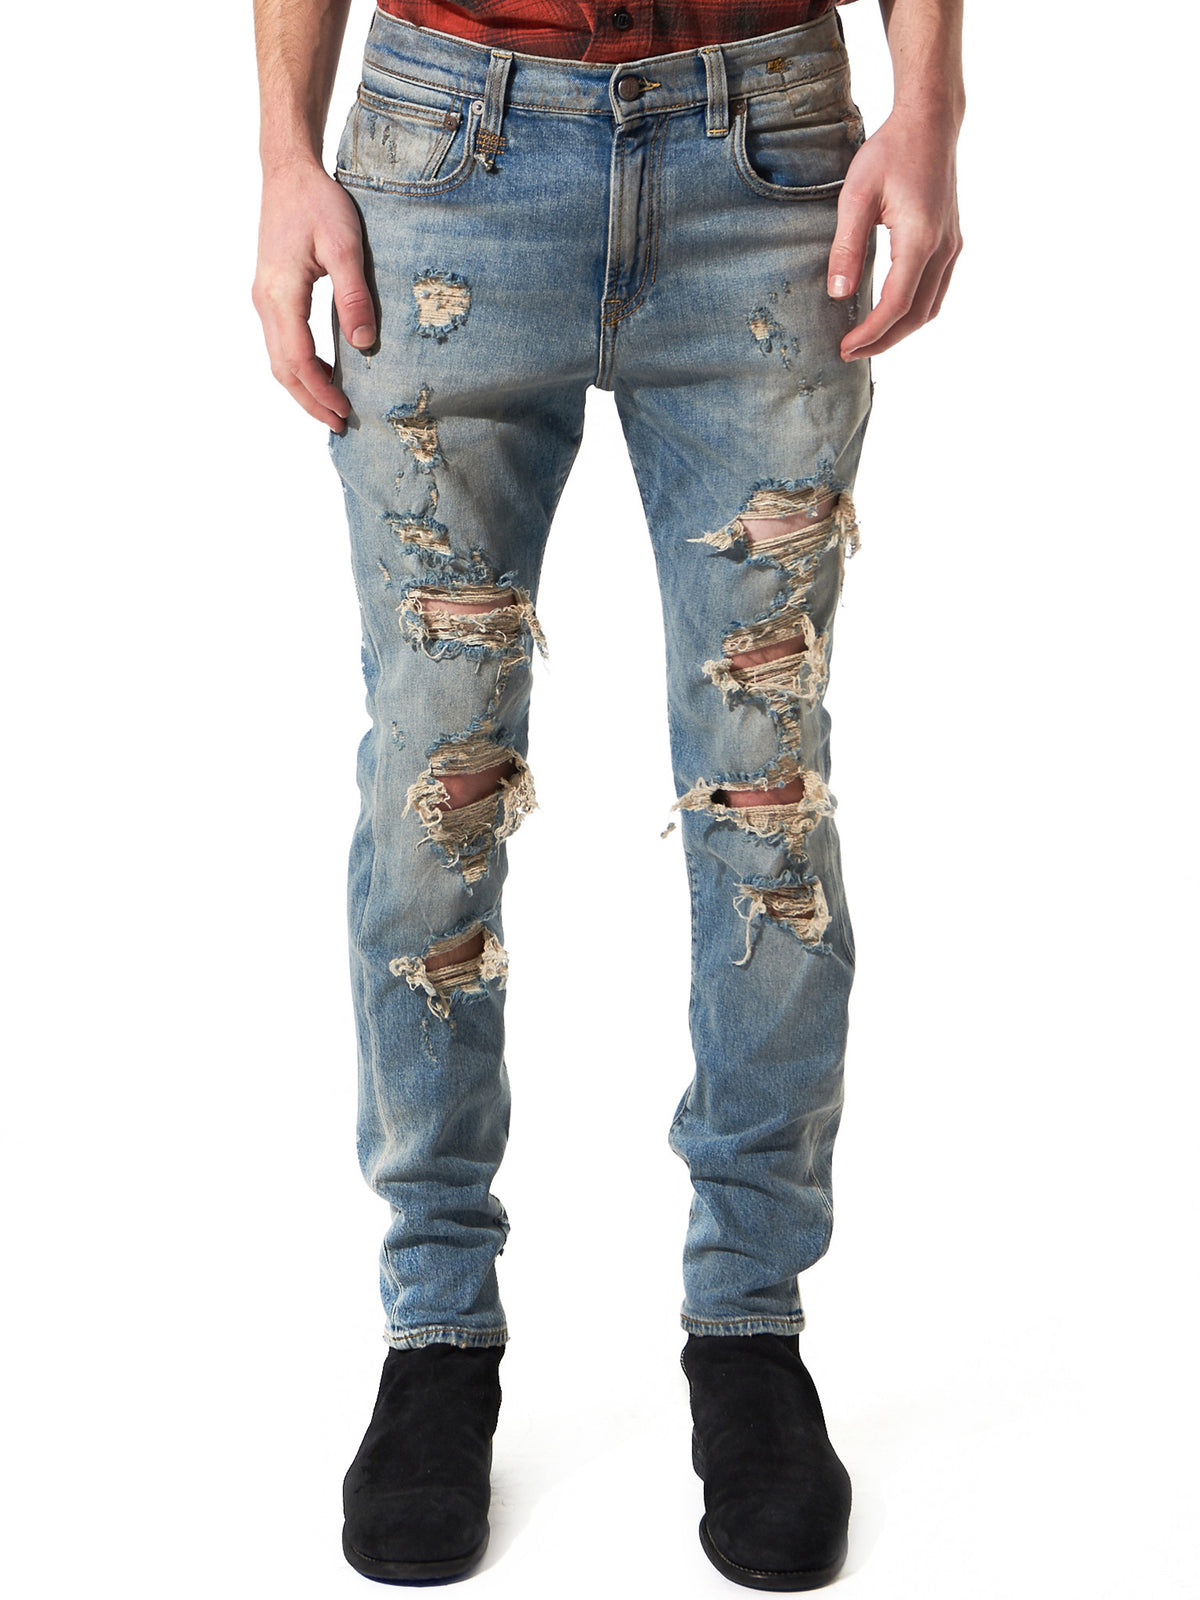 Heavily Distressed Denim(R13M0199-253 40M CRMWL) - H. Lorenzo